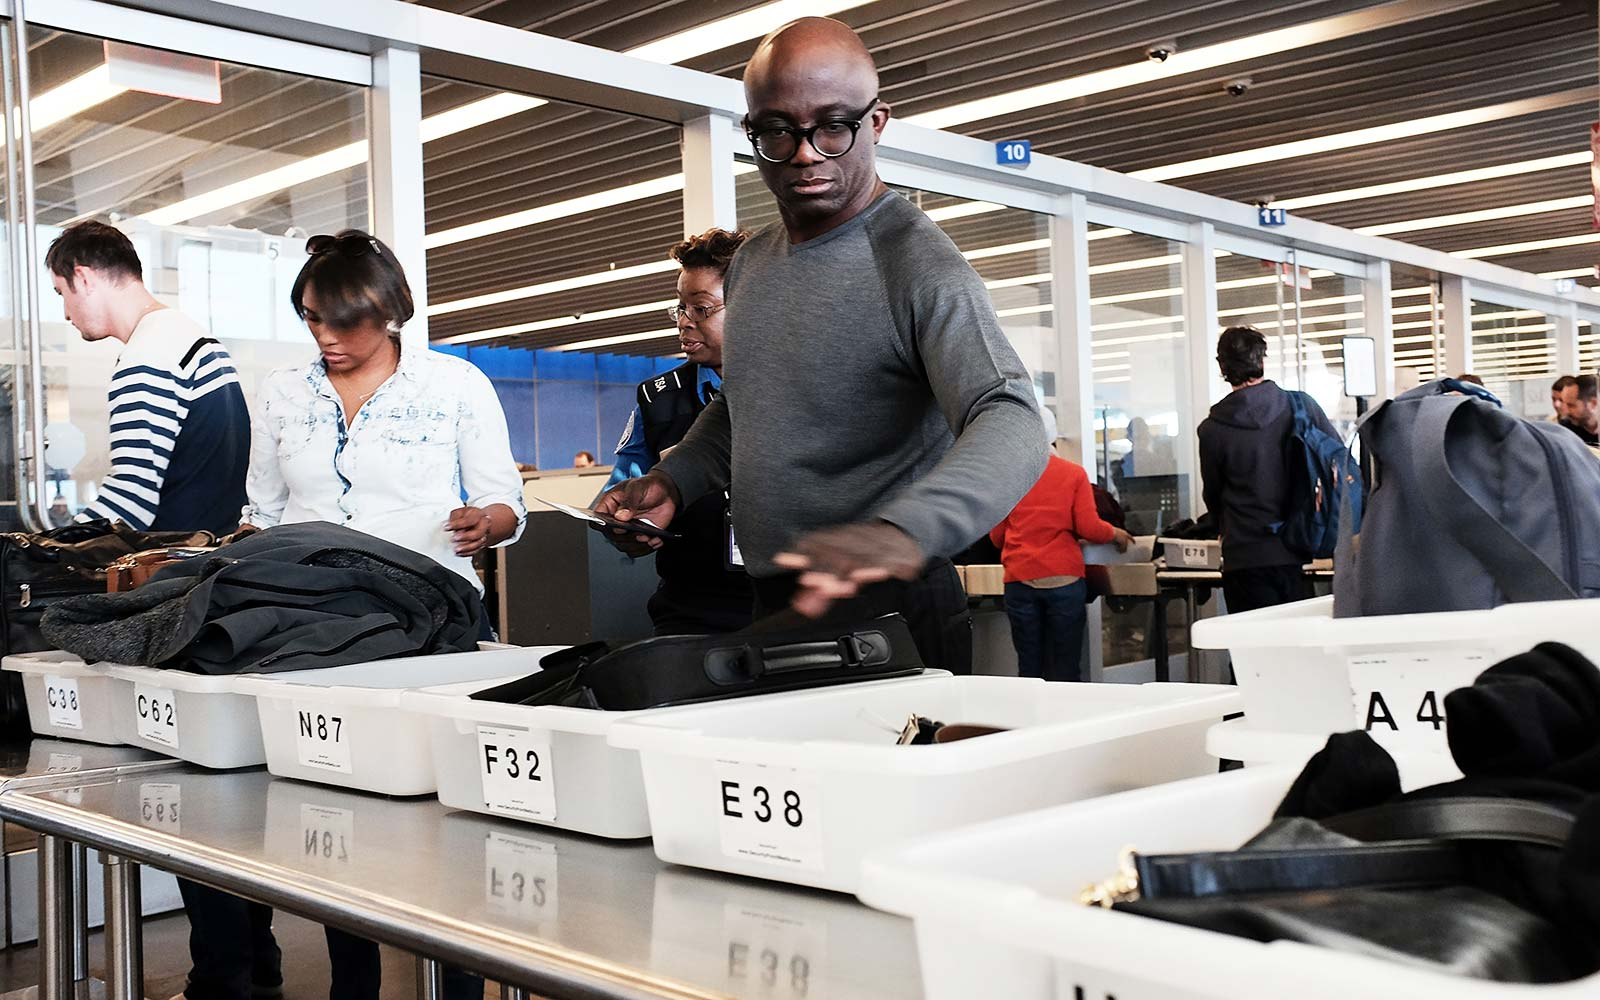 This Airport Has Introduced Self-cleaning Trays at Security